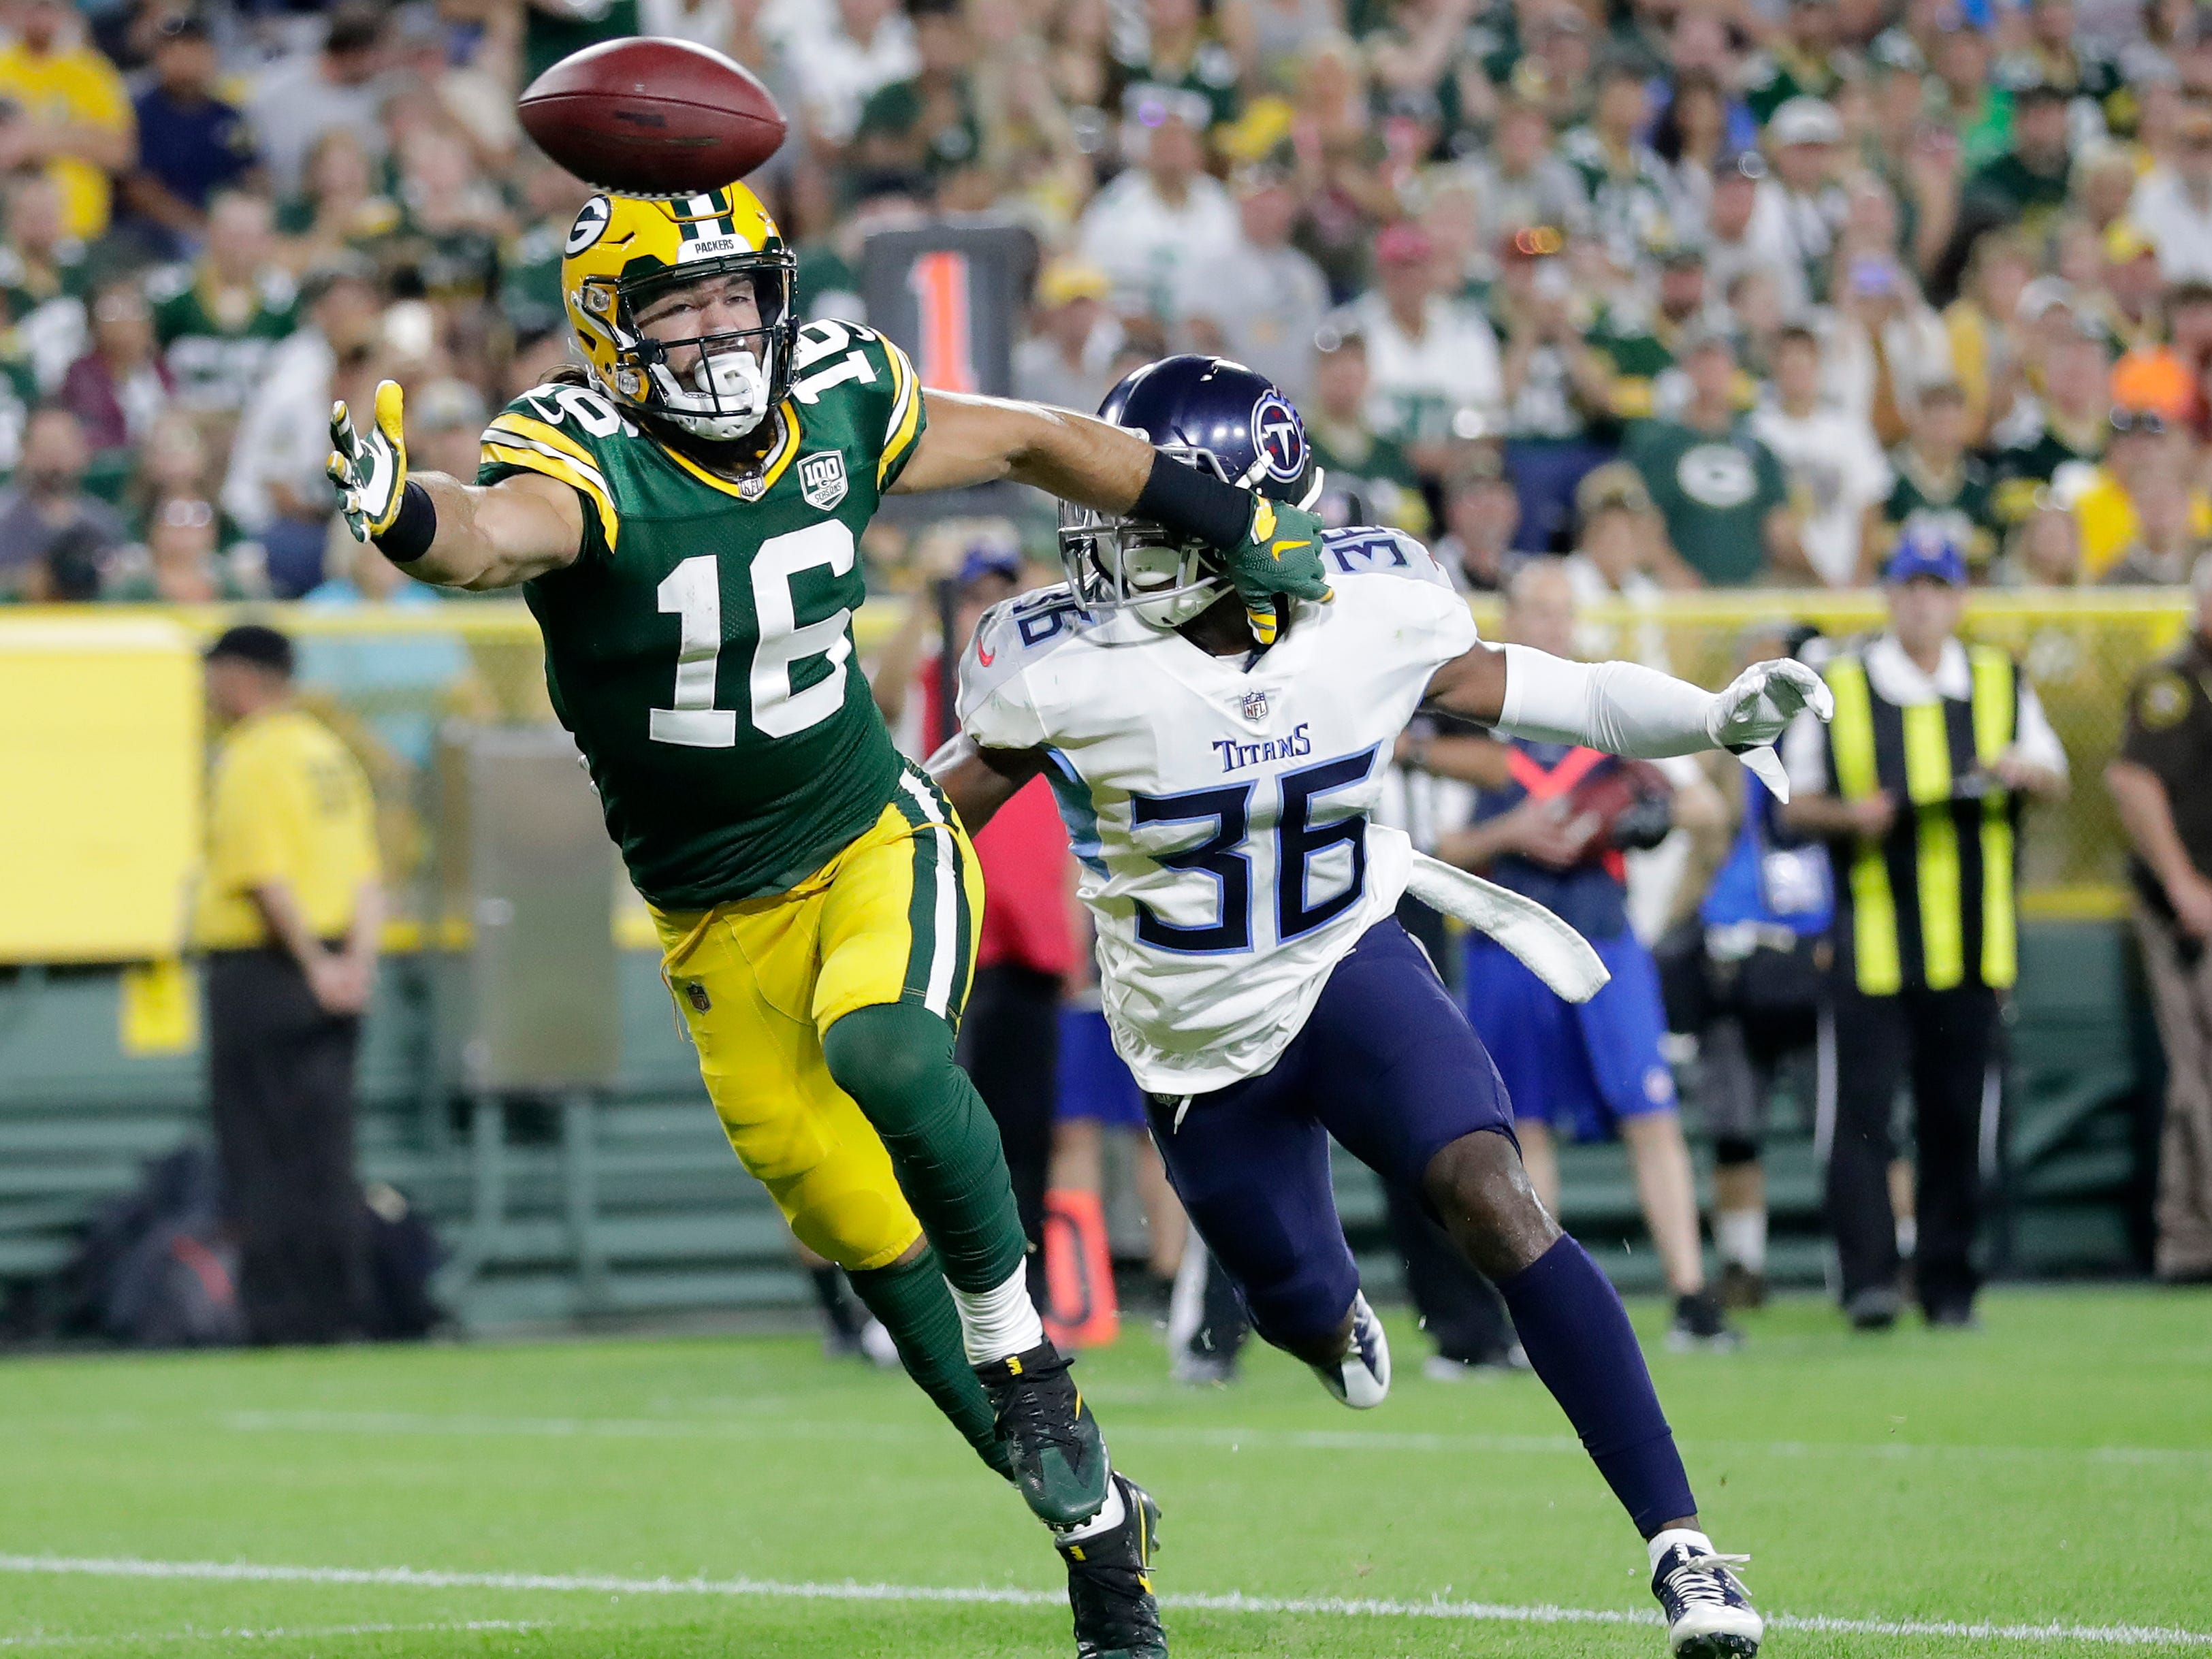 Green Bay Packers wide receiver Jake Kumerow (16) stretches in an attempt to reach a pass in the first half against the Tennessee Titans of a NFL preseason game at Lambeau Field on Thursday, August 9, 2018 in Green Bay, Wis.